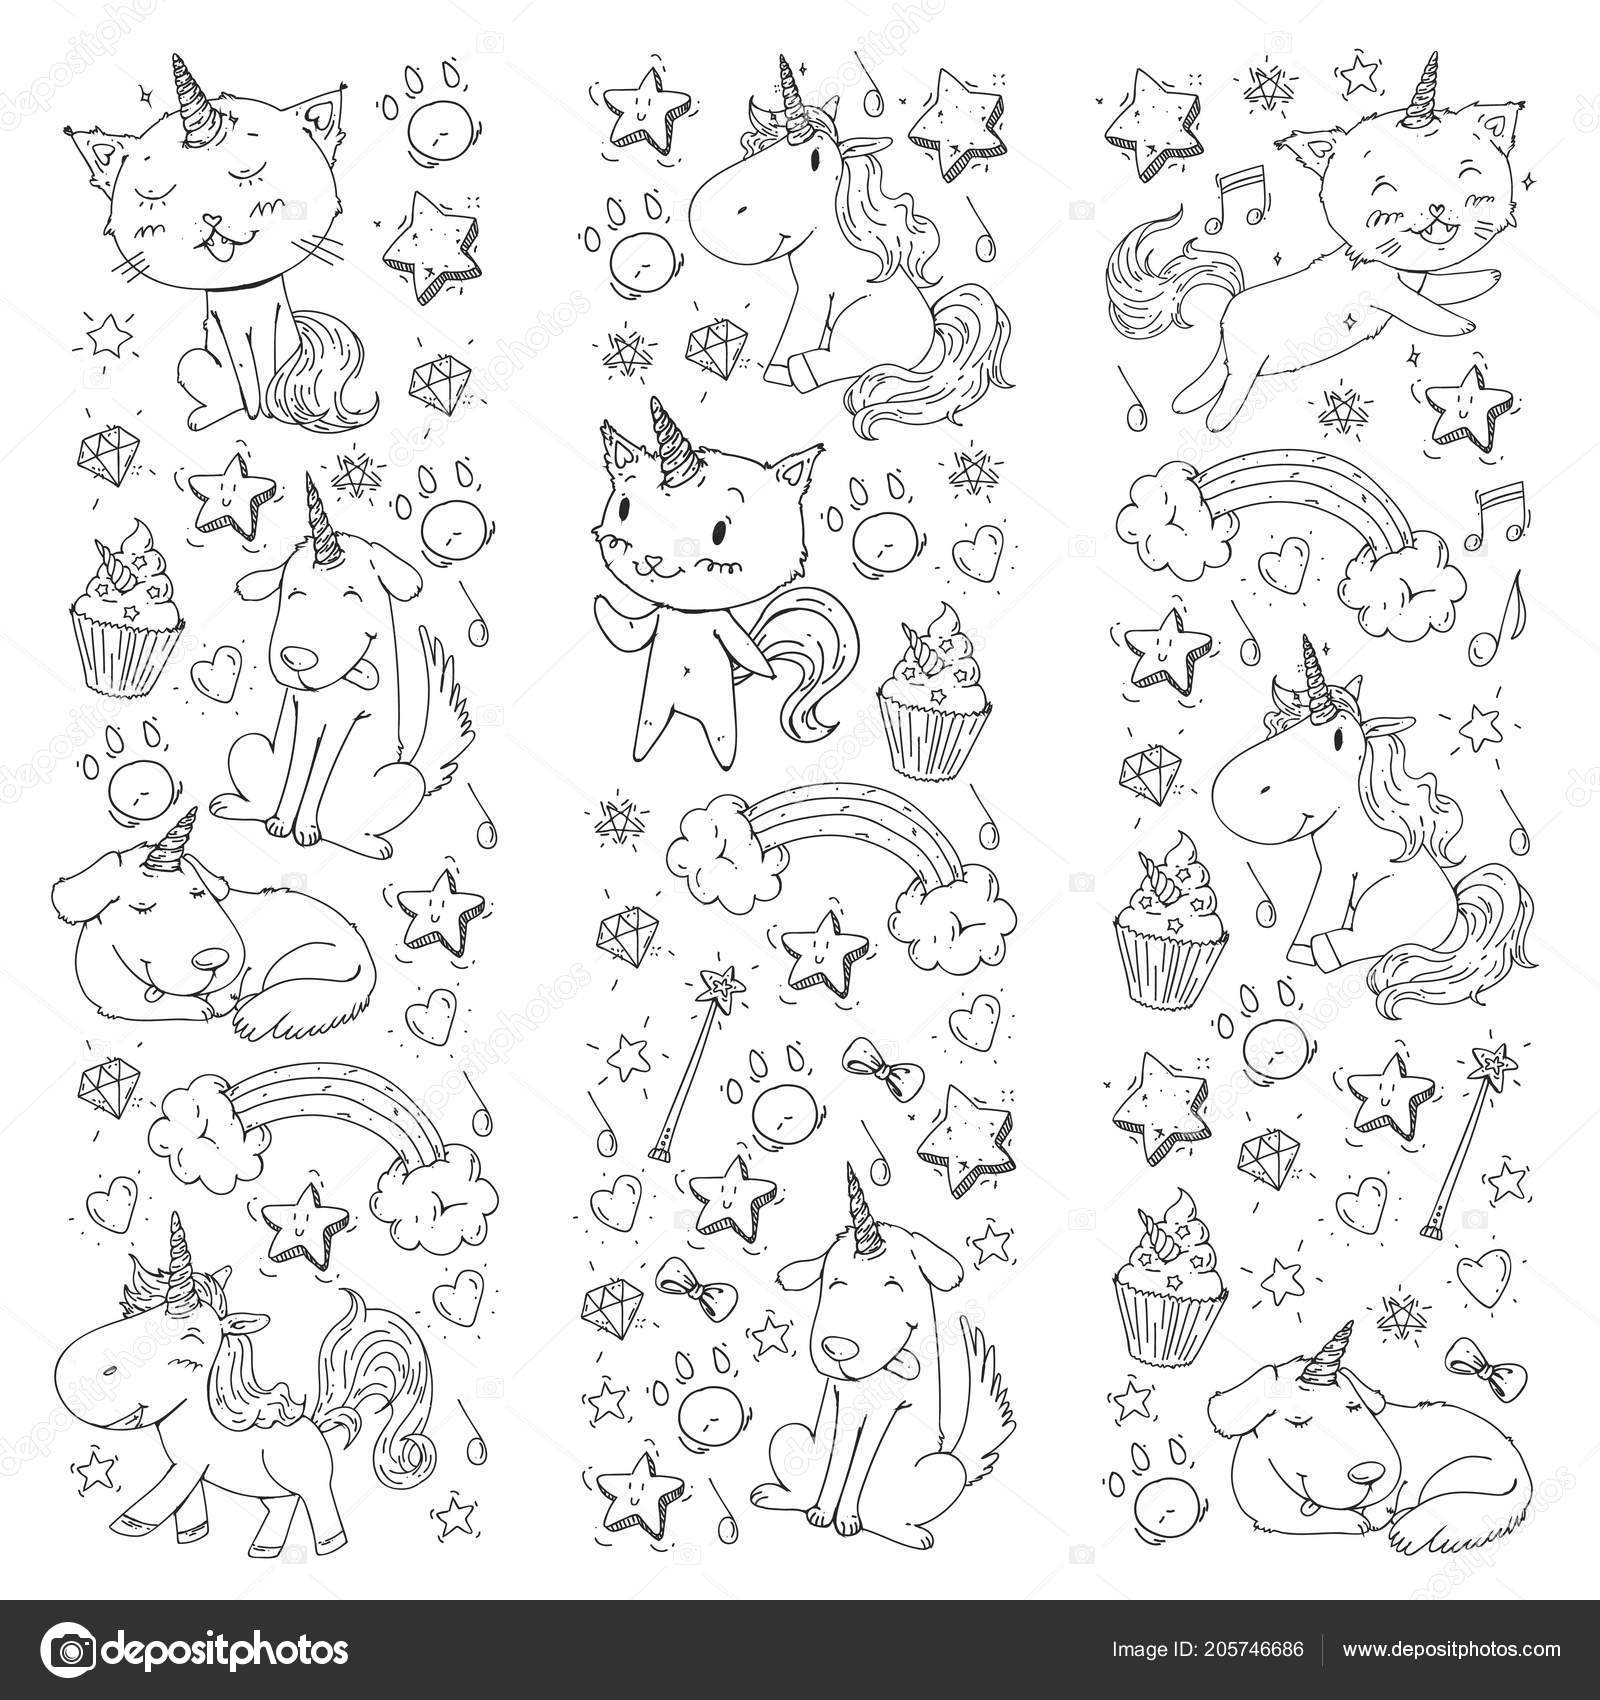 Unicorn Cats Dog Horse Pony Vector Image Coloring Page For